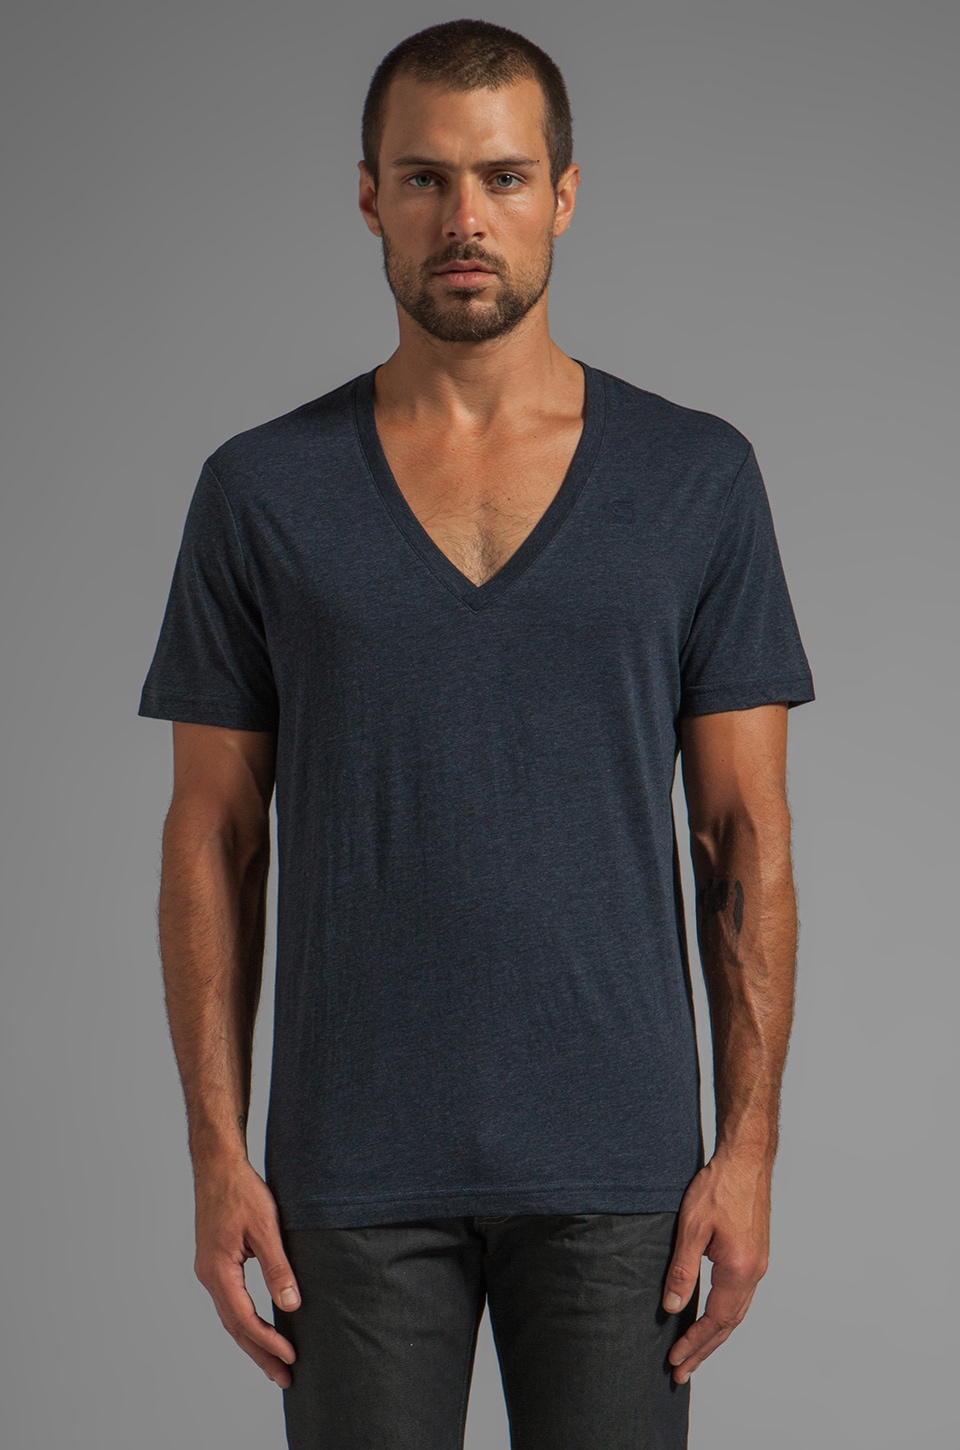 G-Star V Neck Double Pack in Mazarine Blue